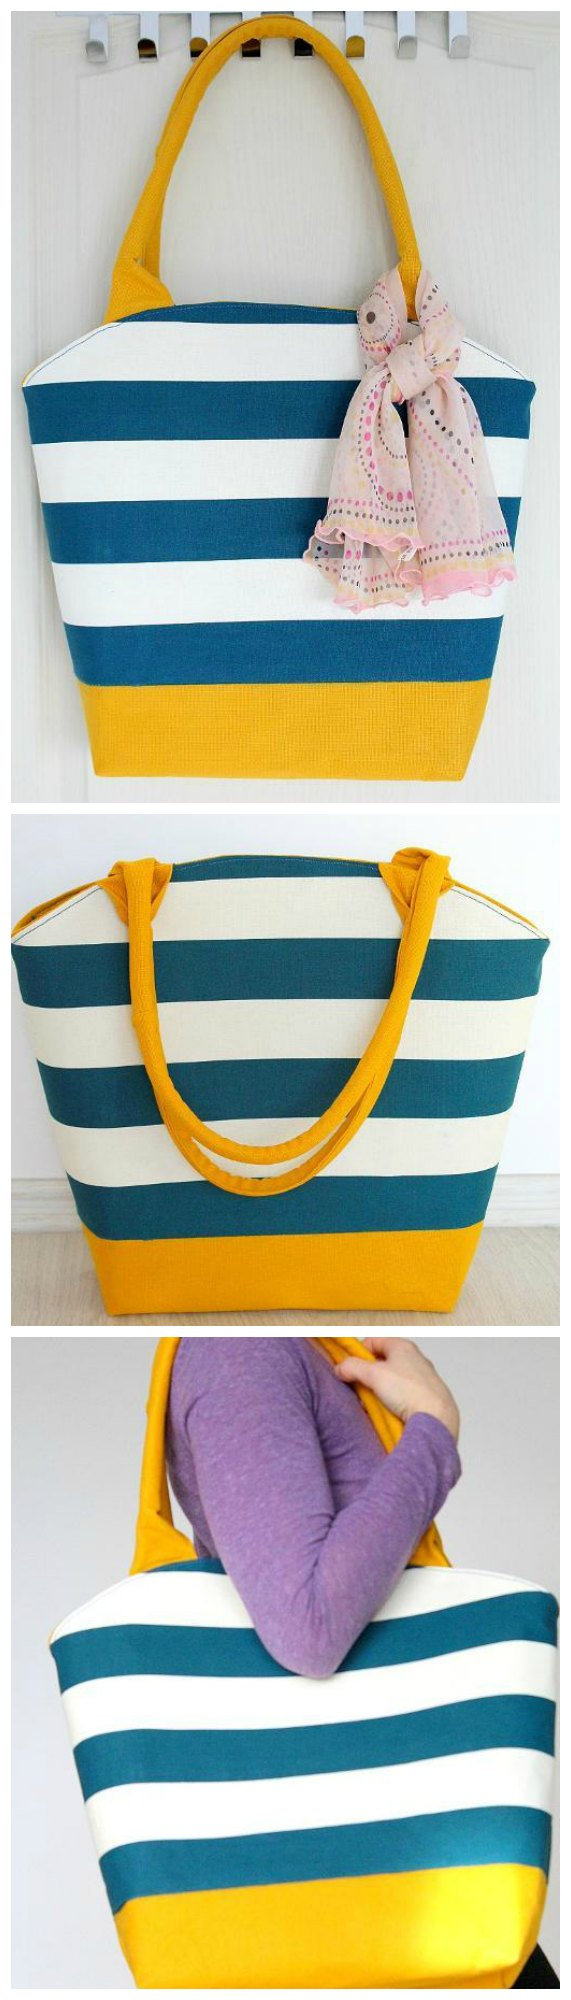 Free sewing pattern. The perfect summer tote, or large purse. With a zipper across the curved top, this tote is practical and simple - yet with the right fabric it can look stunning!